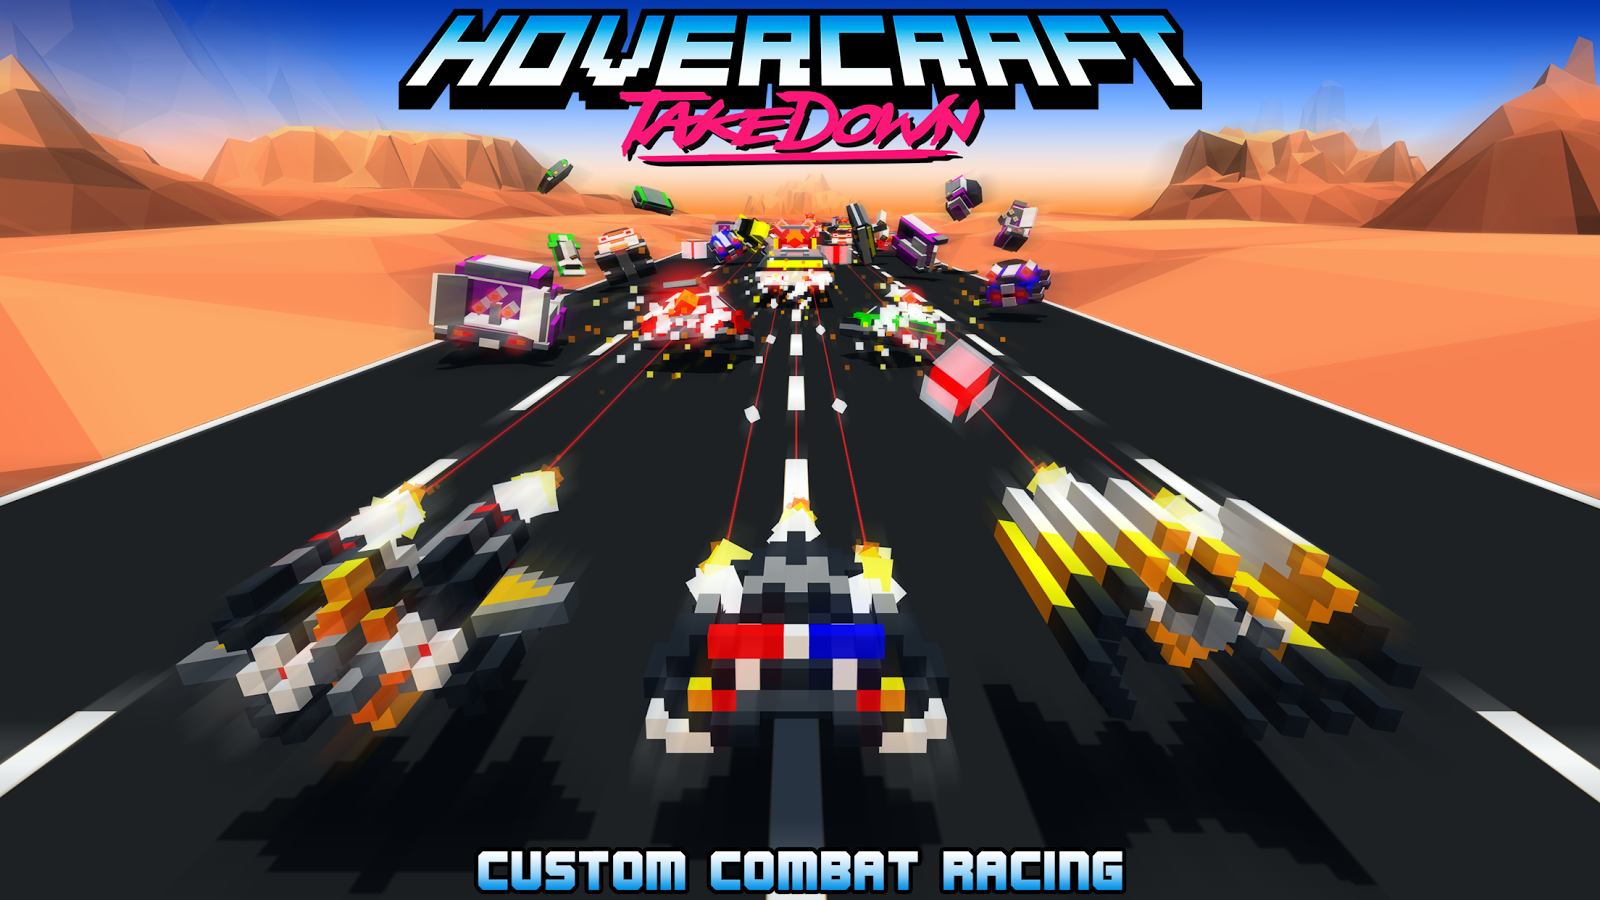 Home Design Game App For Android Hovercraft Takedown Android Apps On Google Play